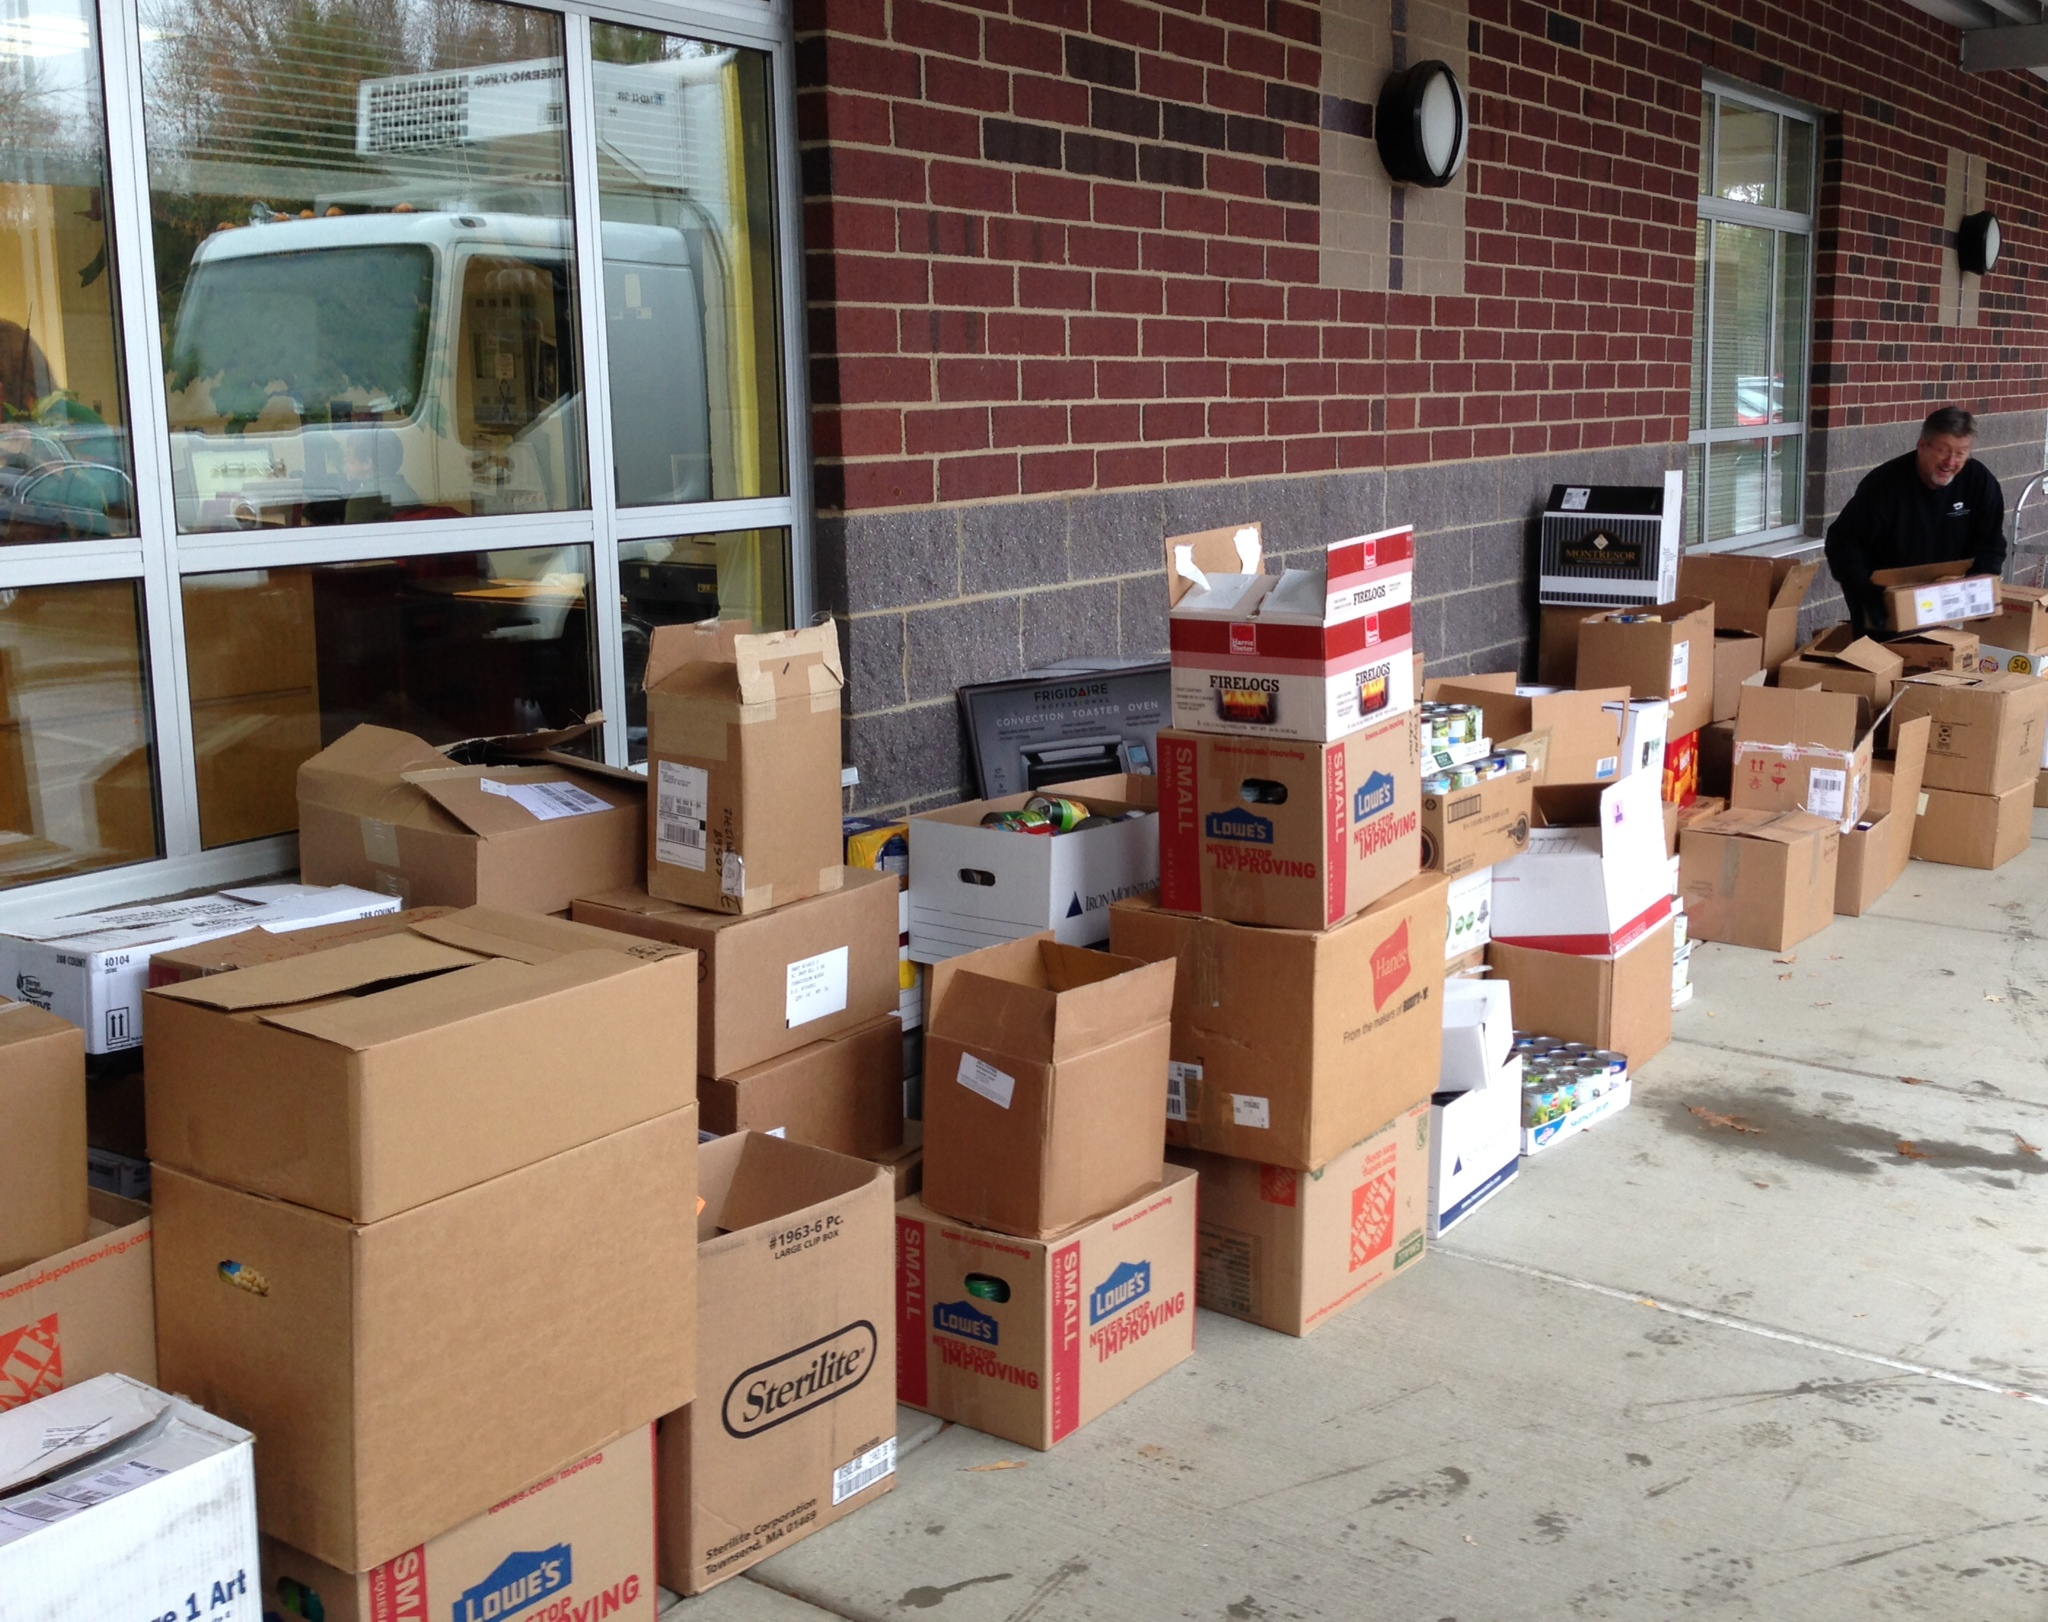 Loaves and fishes canned food drive for Loaves and fishes charlotte nc